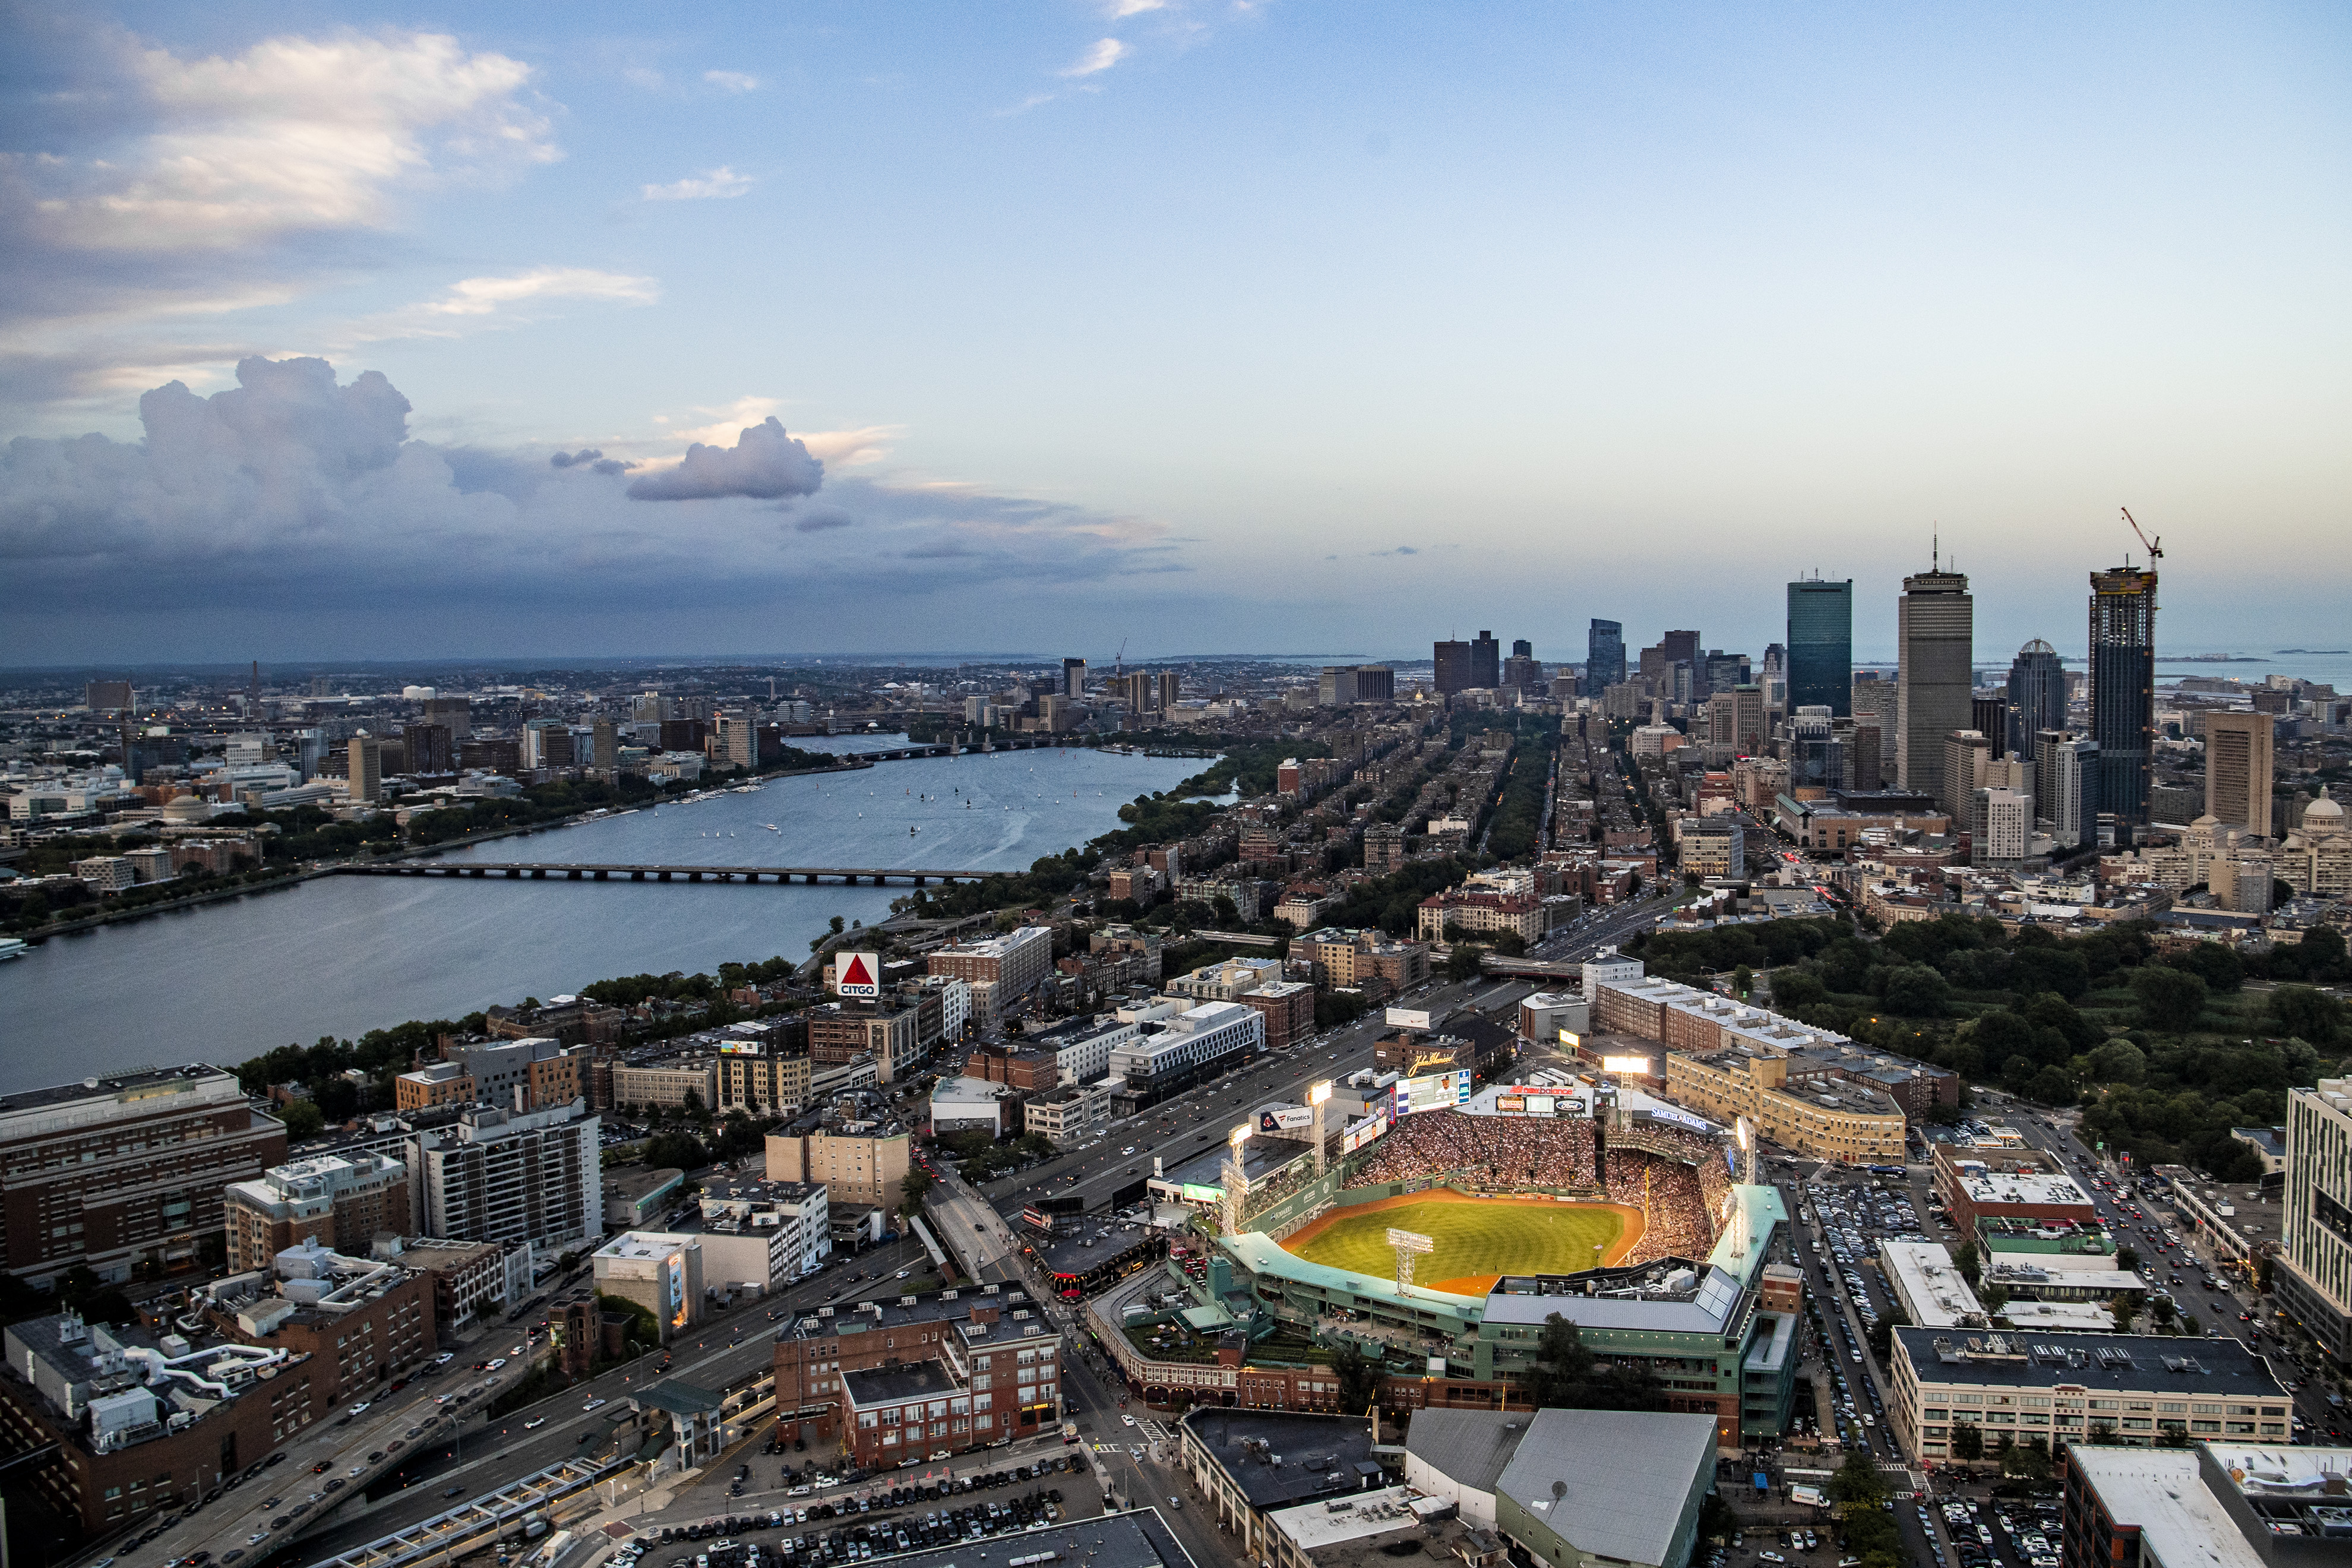 An aerial shot of a ballpark amid the City of Boston. The stadium, called Fenway Park, is illuminated, and much of the rest of the city is dark.